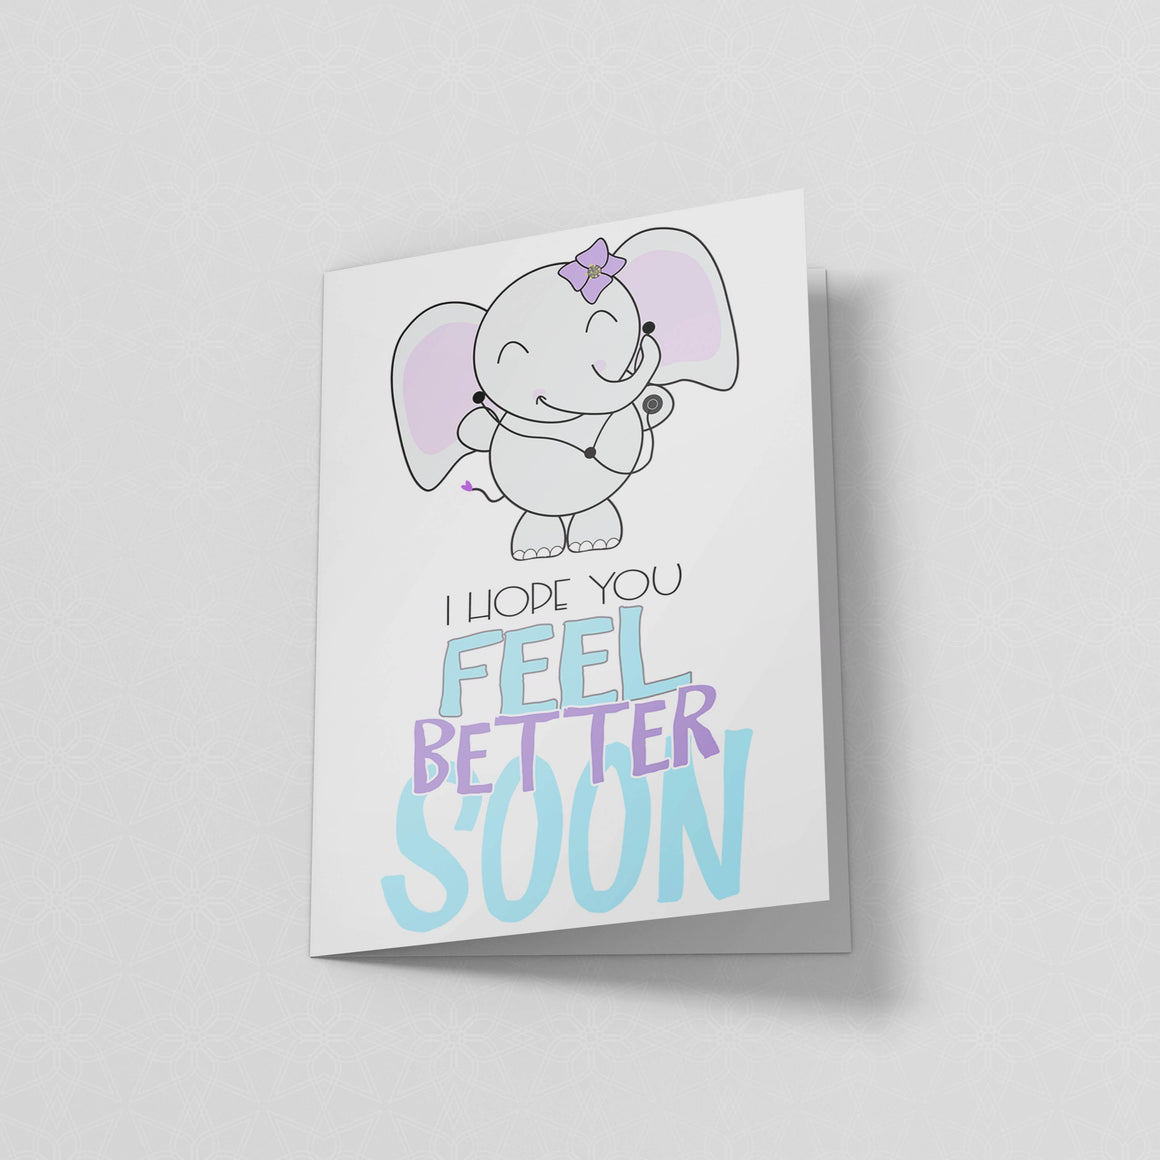 Feel Better Soon - Greeting Card